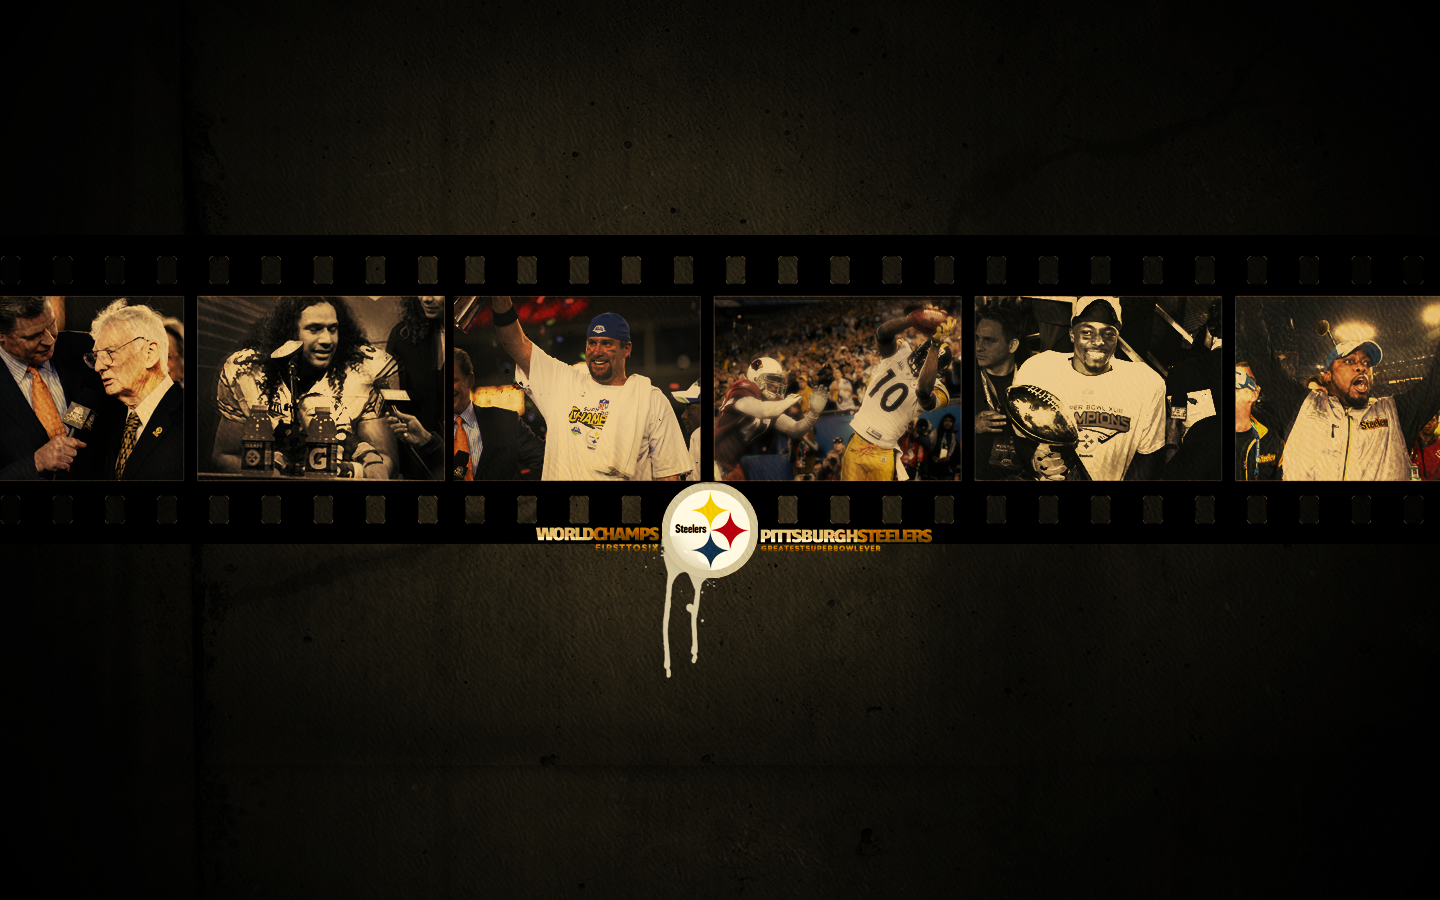 Pittsburgh steelers by patspwn on deviantart pittsburgh steelers by patspwn pittsburgh steelers by patspwn voltagebd Images